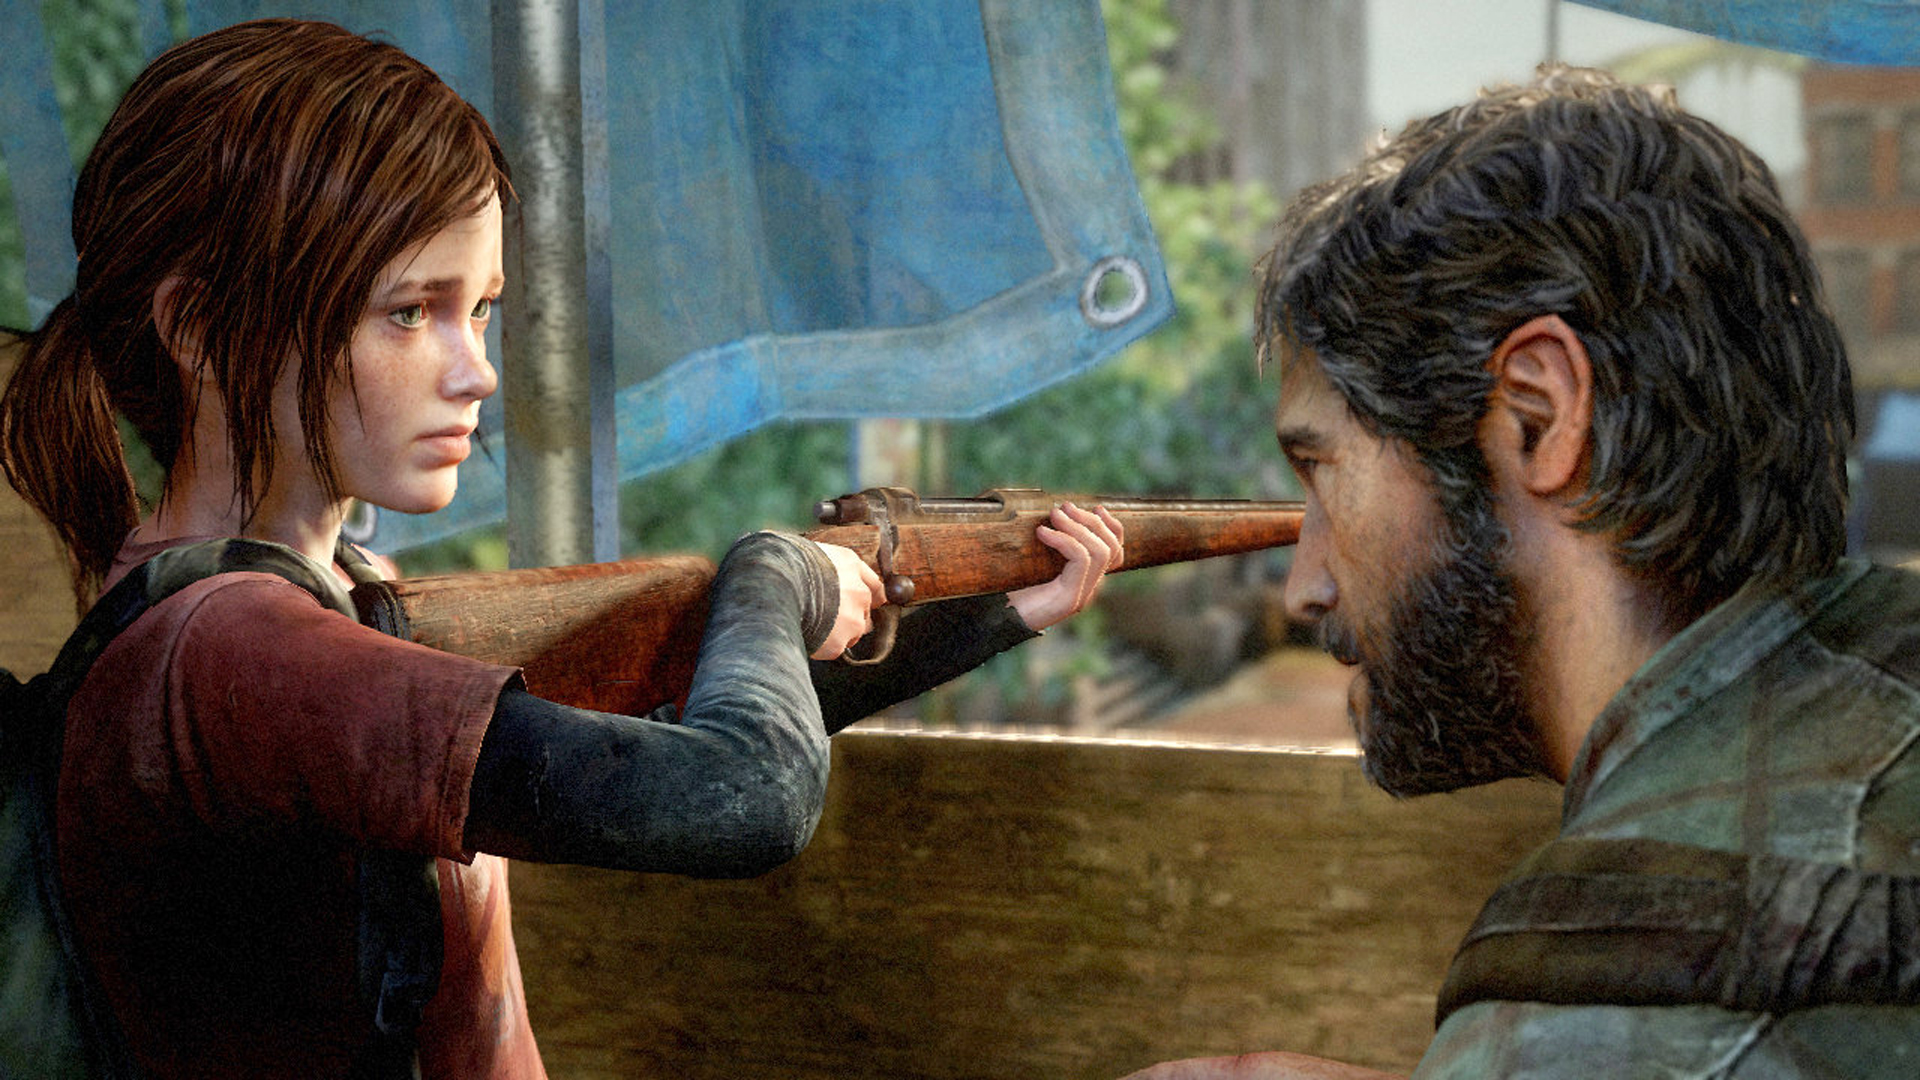 The Last of Us HBO series has